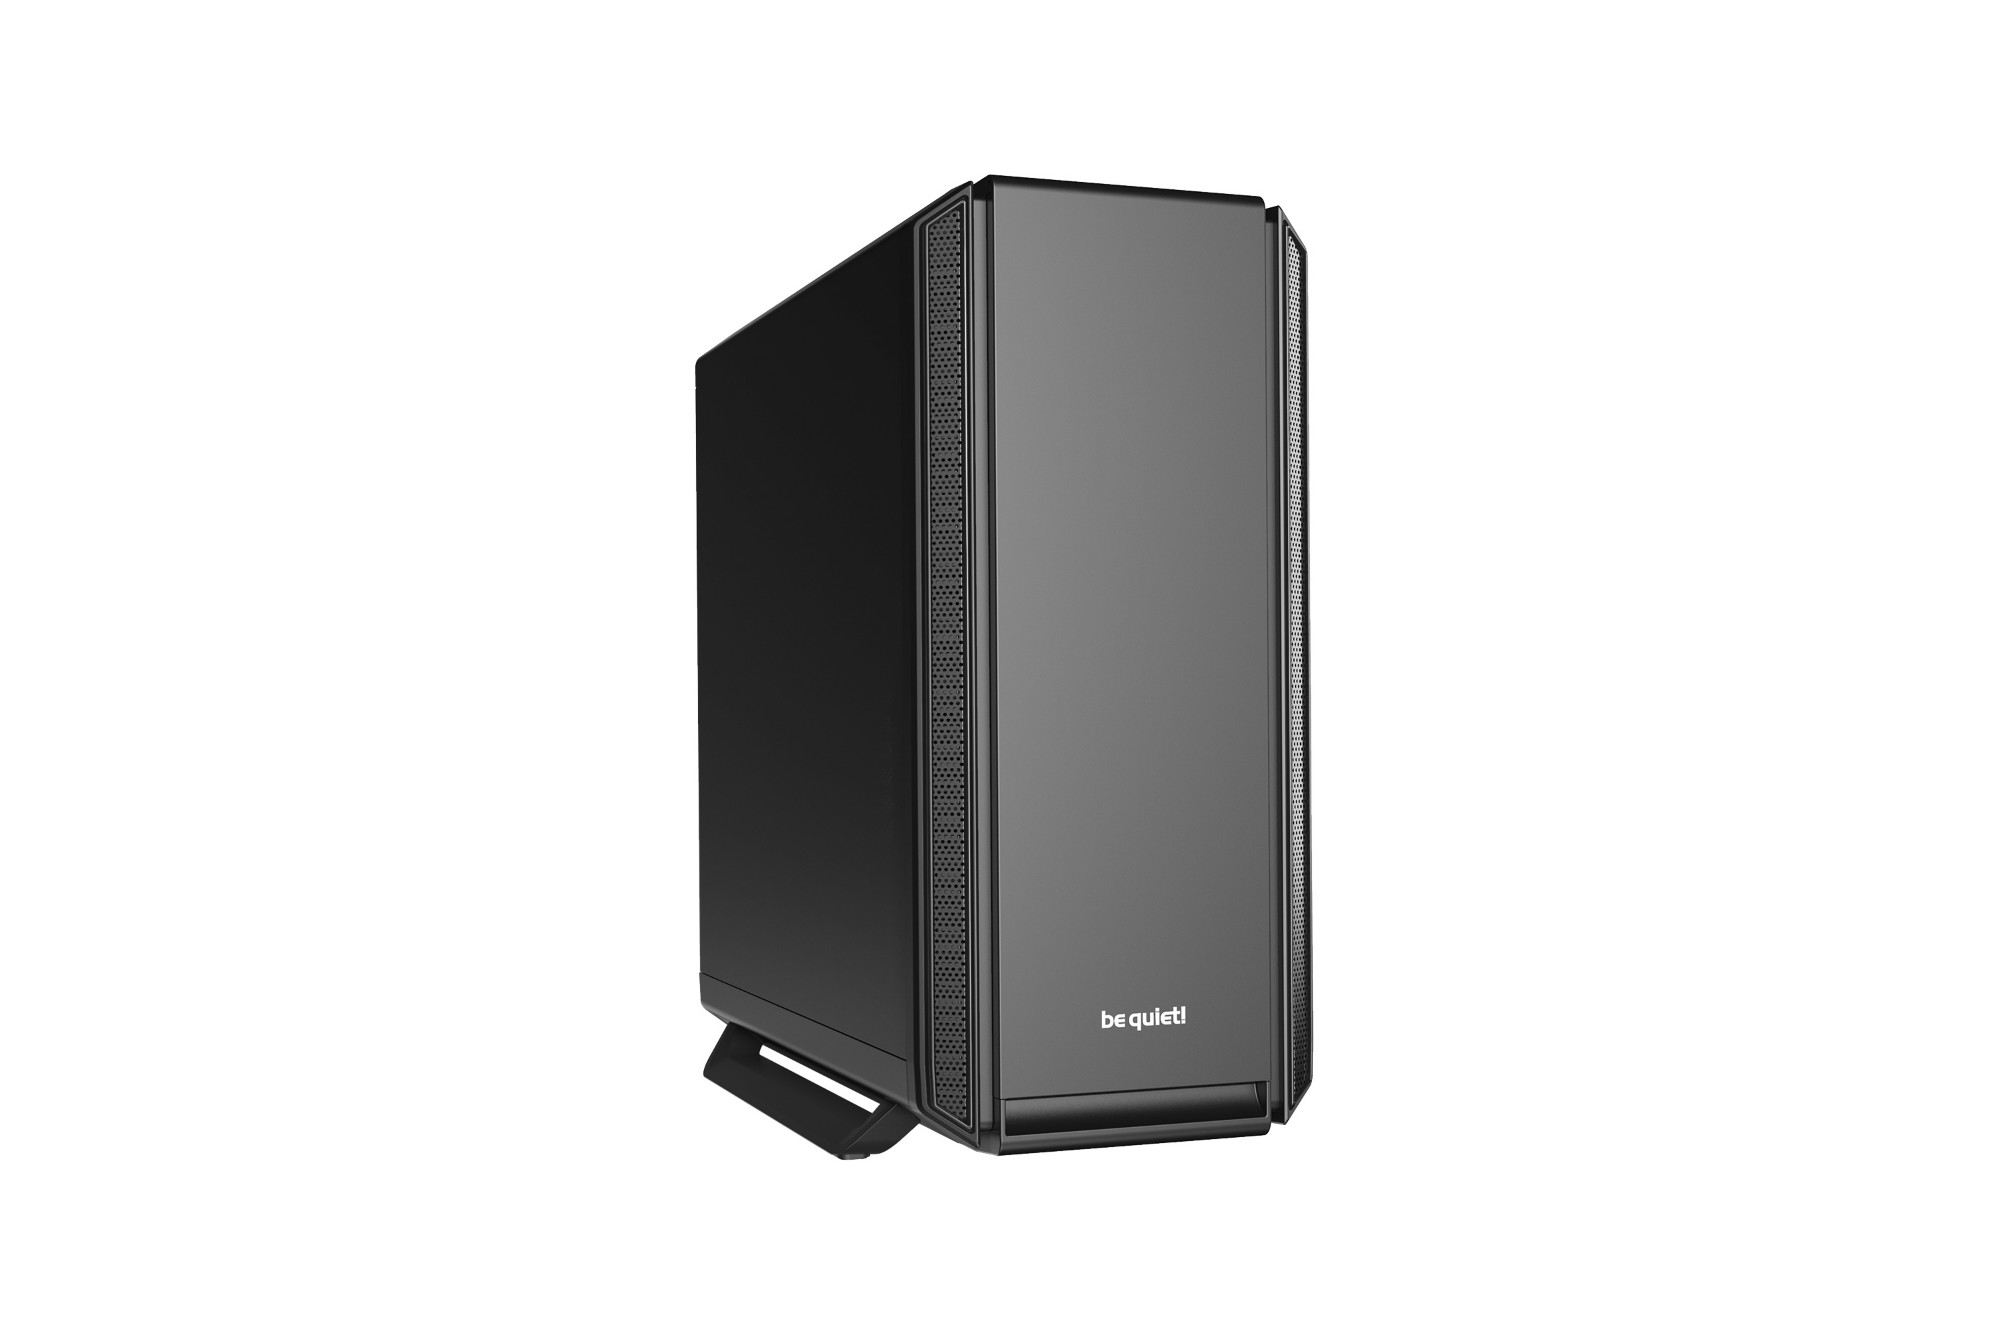 BE QUIET! BG029 SILENT BASE 801 COMPUTER CASE MIDI-TOWER BLACK